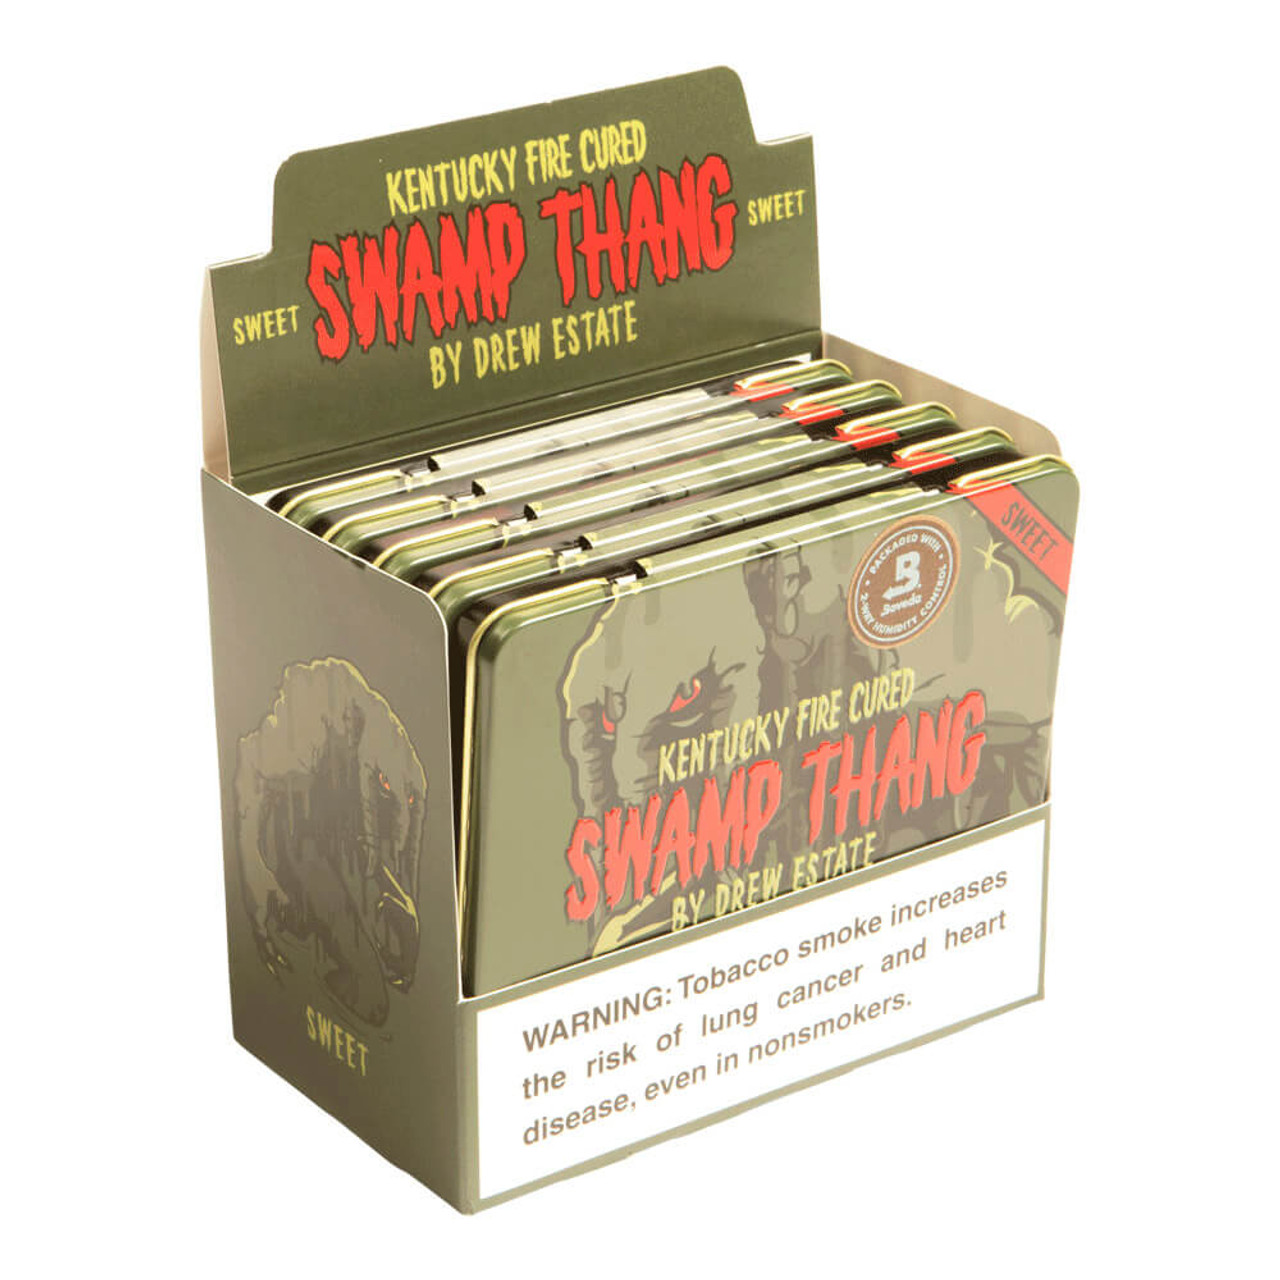 Kentucky Fire Cured Swamp Thang PoniesCigars - 4 x 32 (5 Tins of 10 (50 Total))